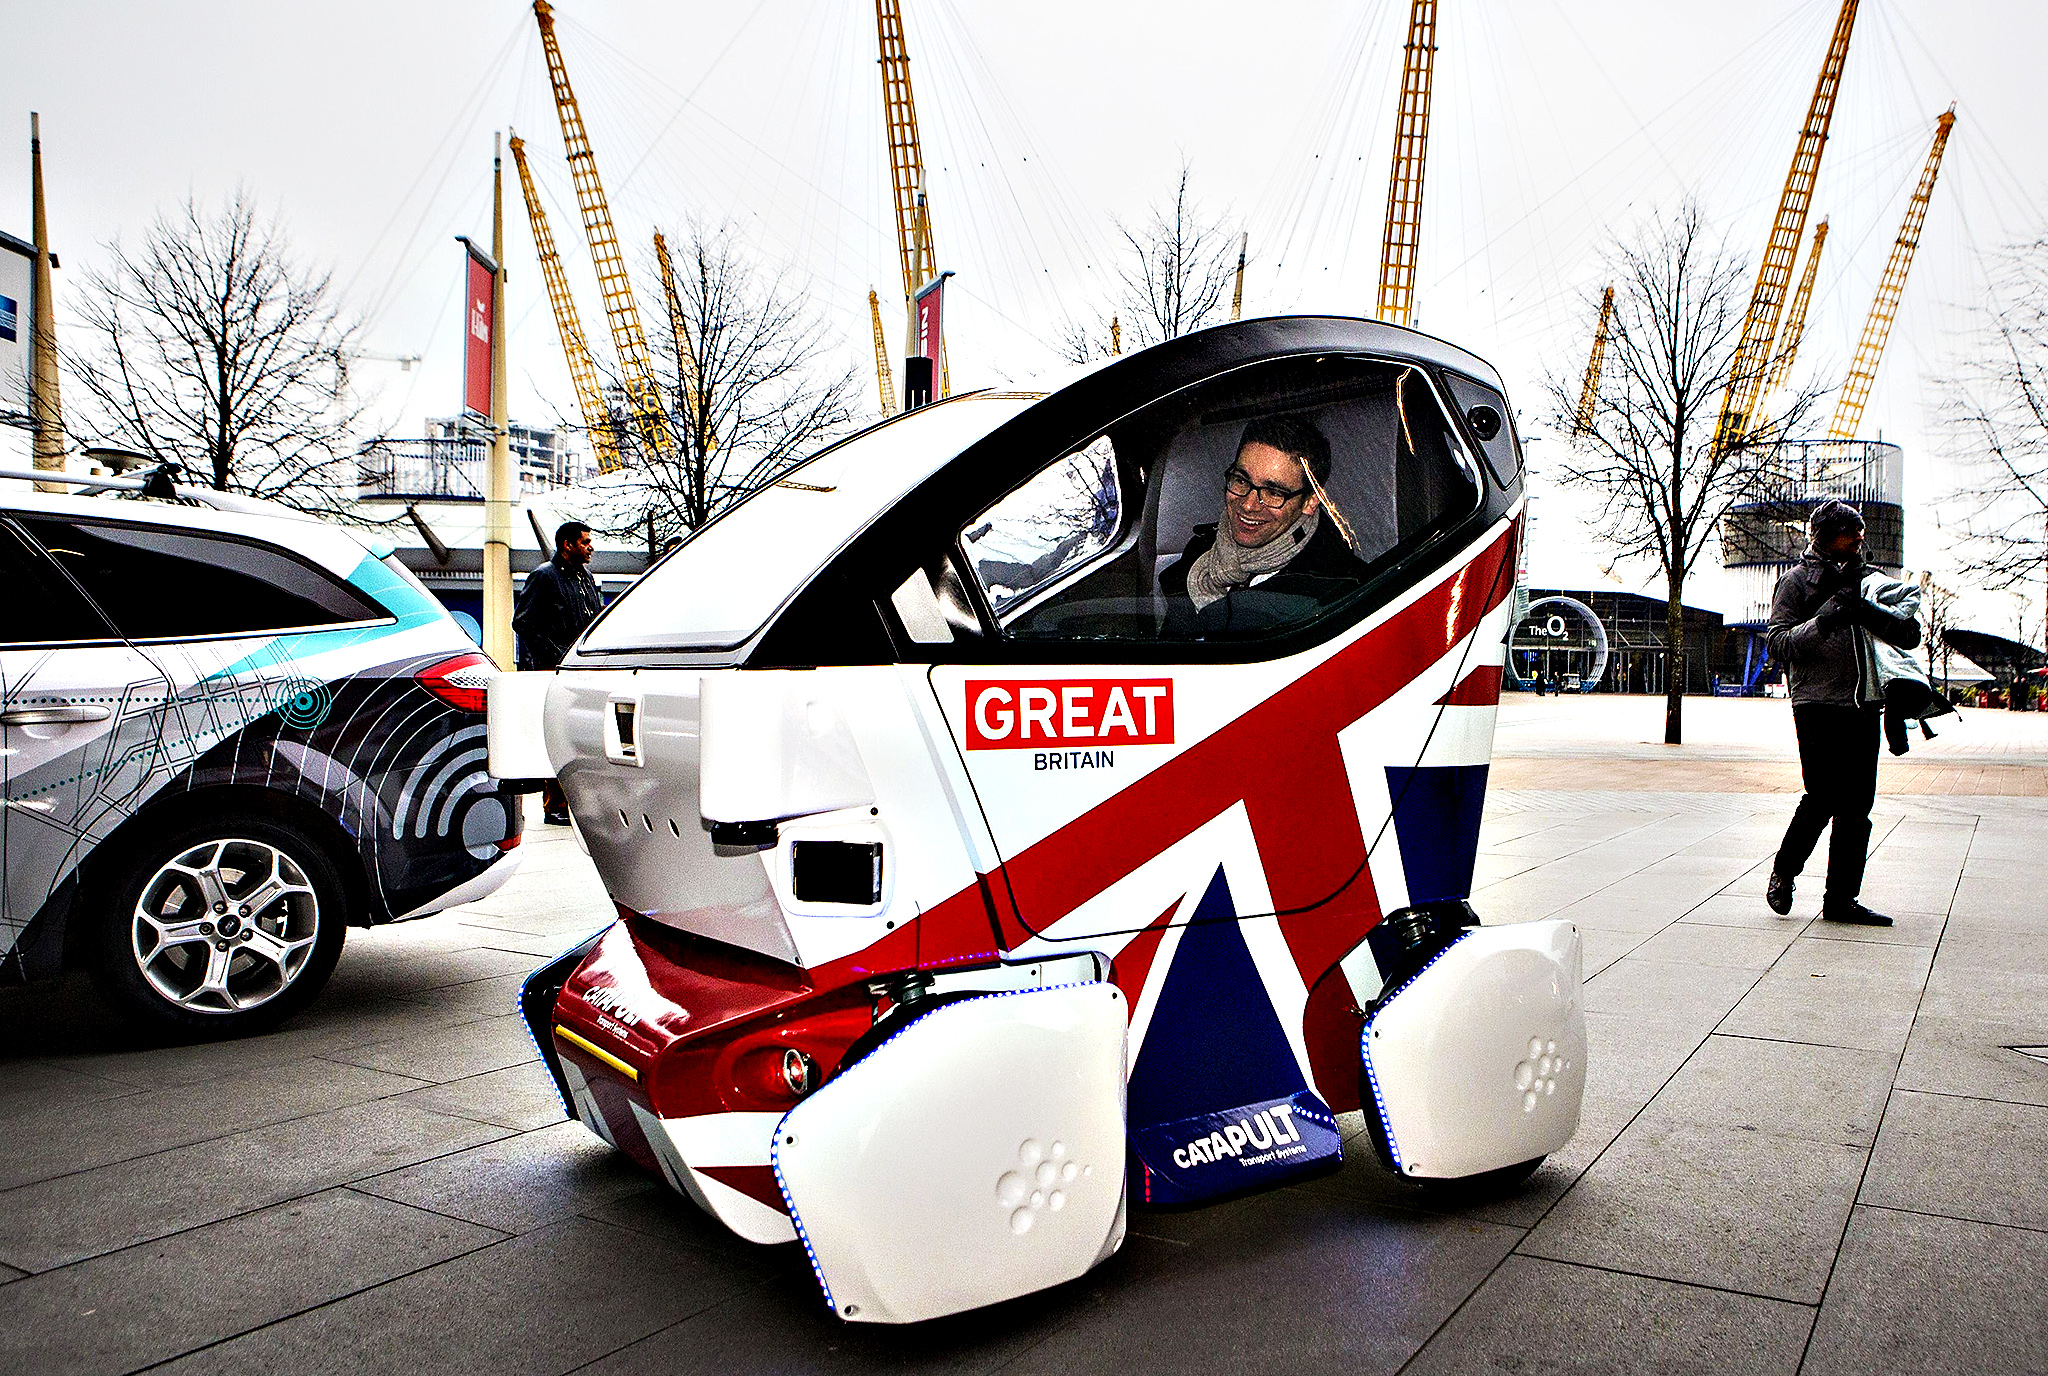 A driverless vehicle known as a Lutz 'Pathfinder' Pod is pictured during a photocall in central London on February 11, 2015. The British government launched the first official trials of driverless cars Wednesday, but said it could be some years before driverless cars are a feature on the roads